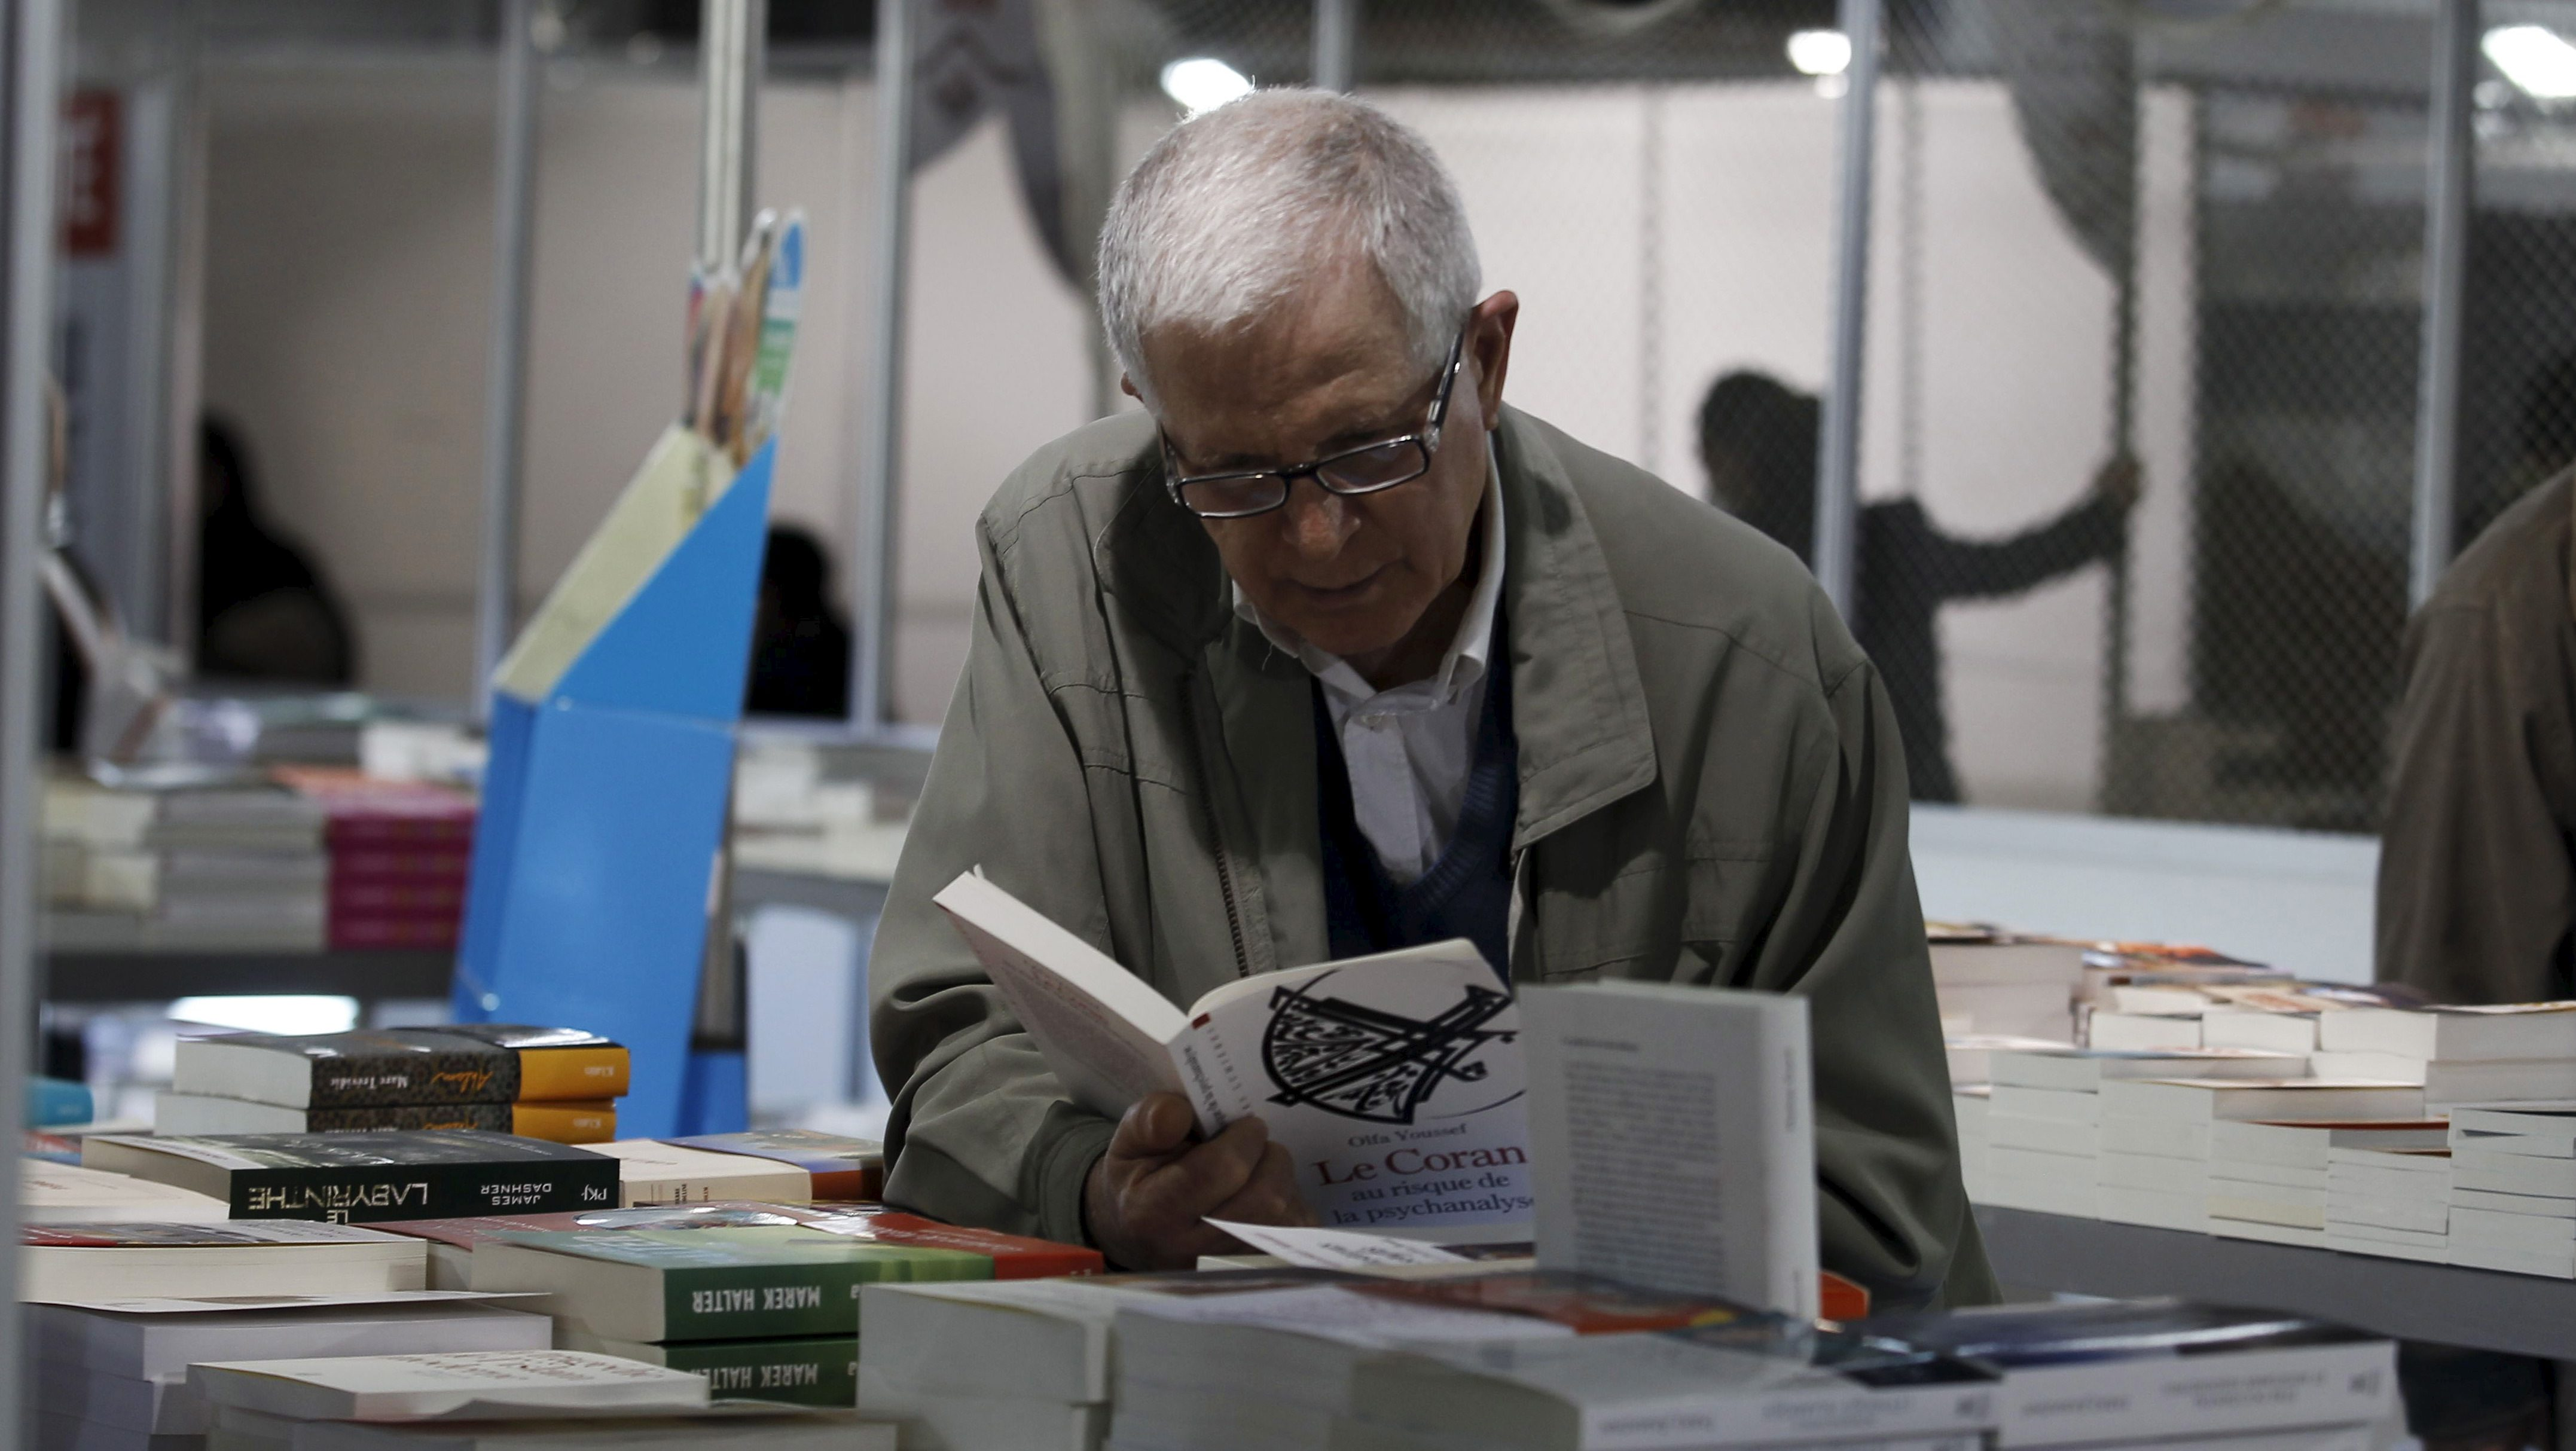 A man reads a book at the 32nd International Book Fair in Tunis, Tunisia, March 25, 2016.